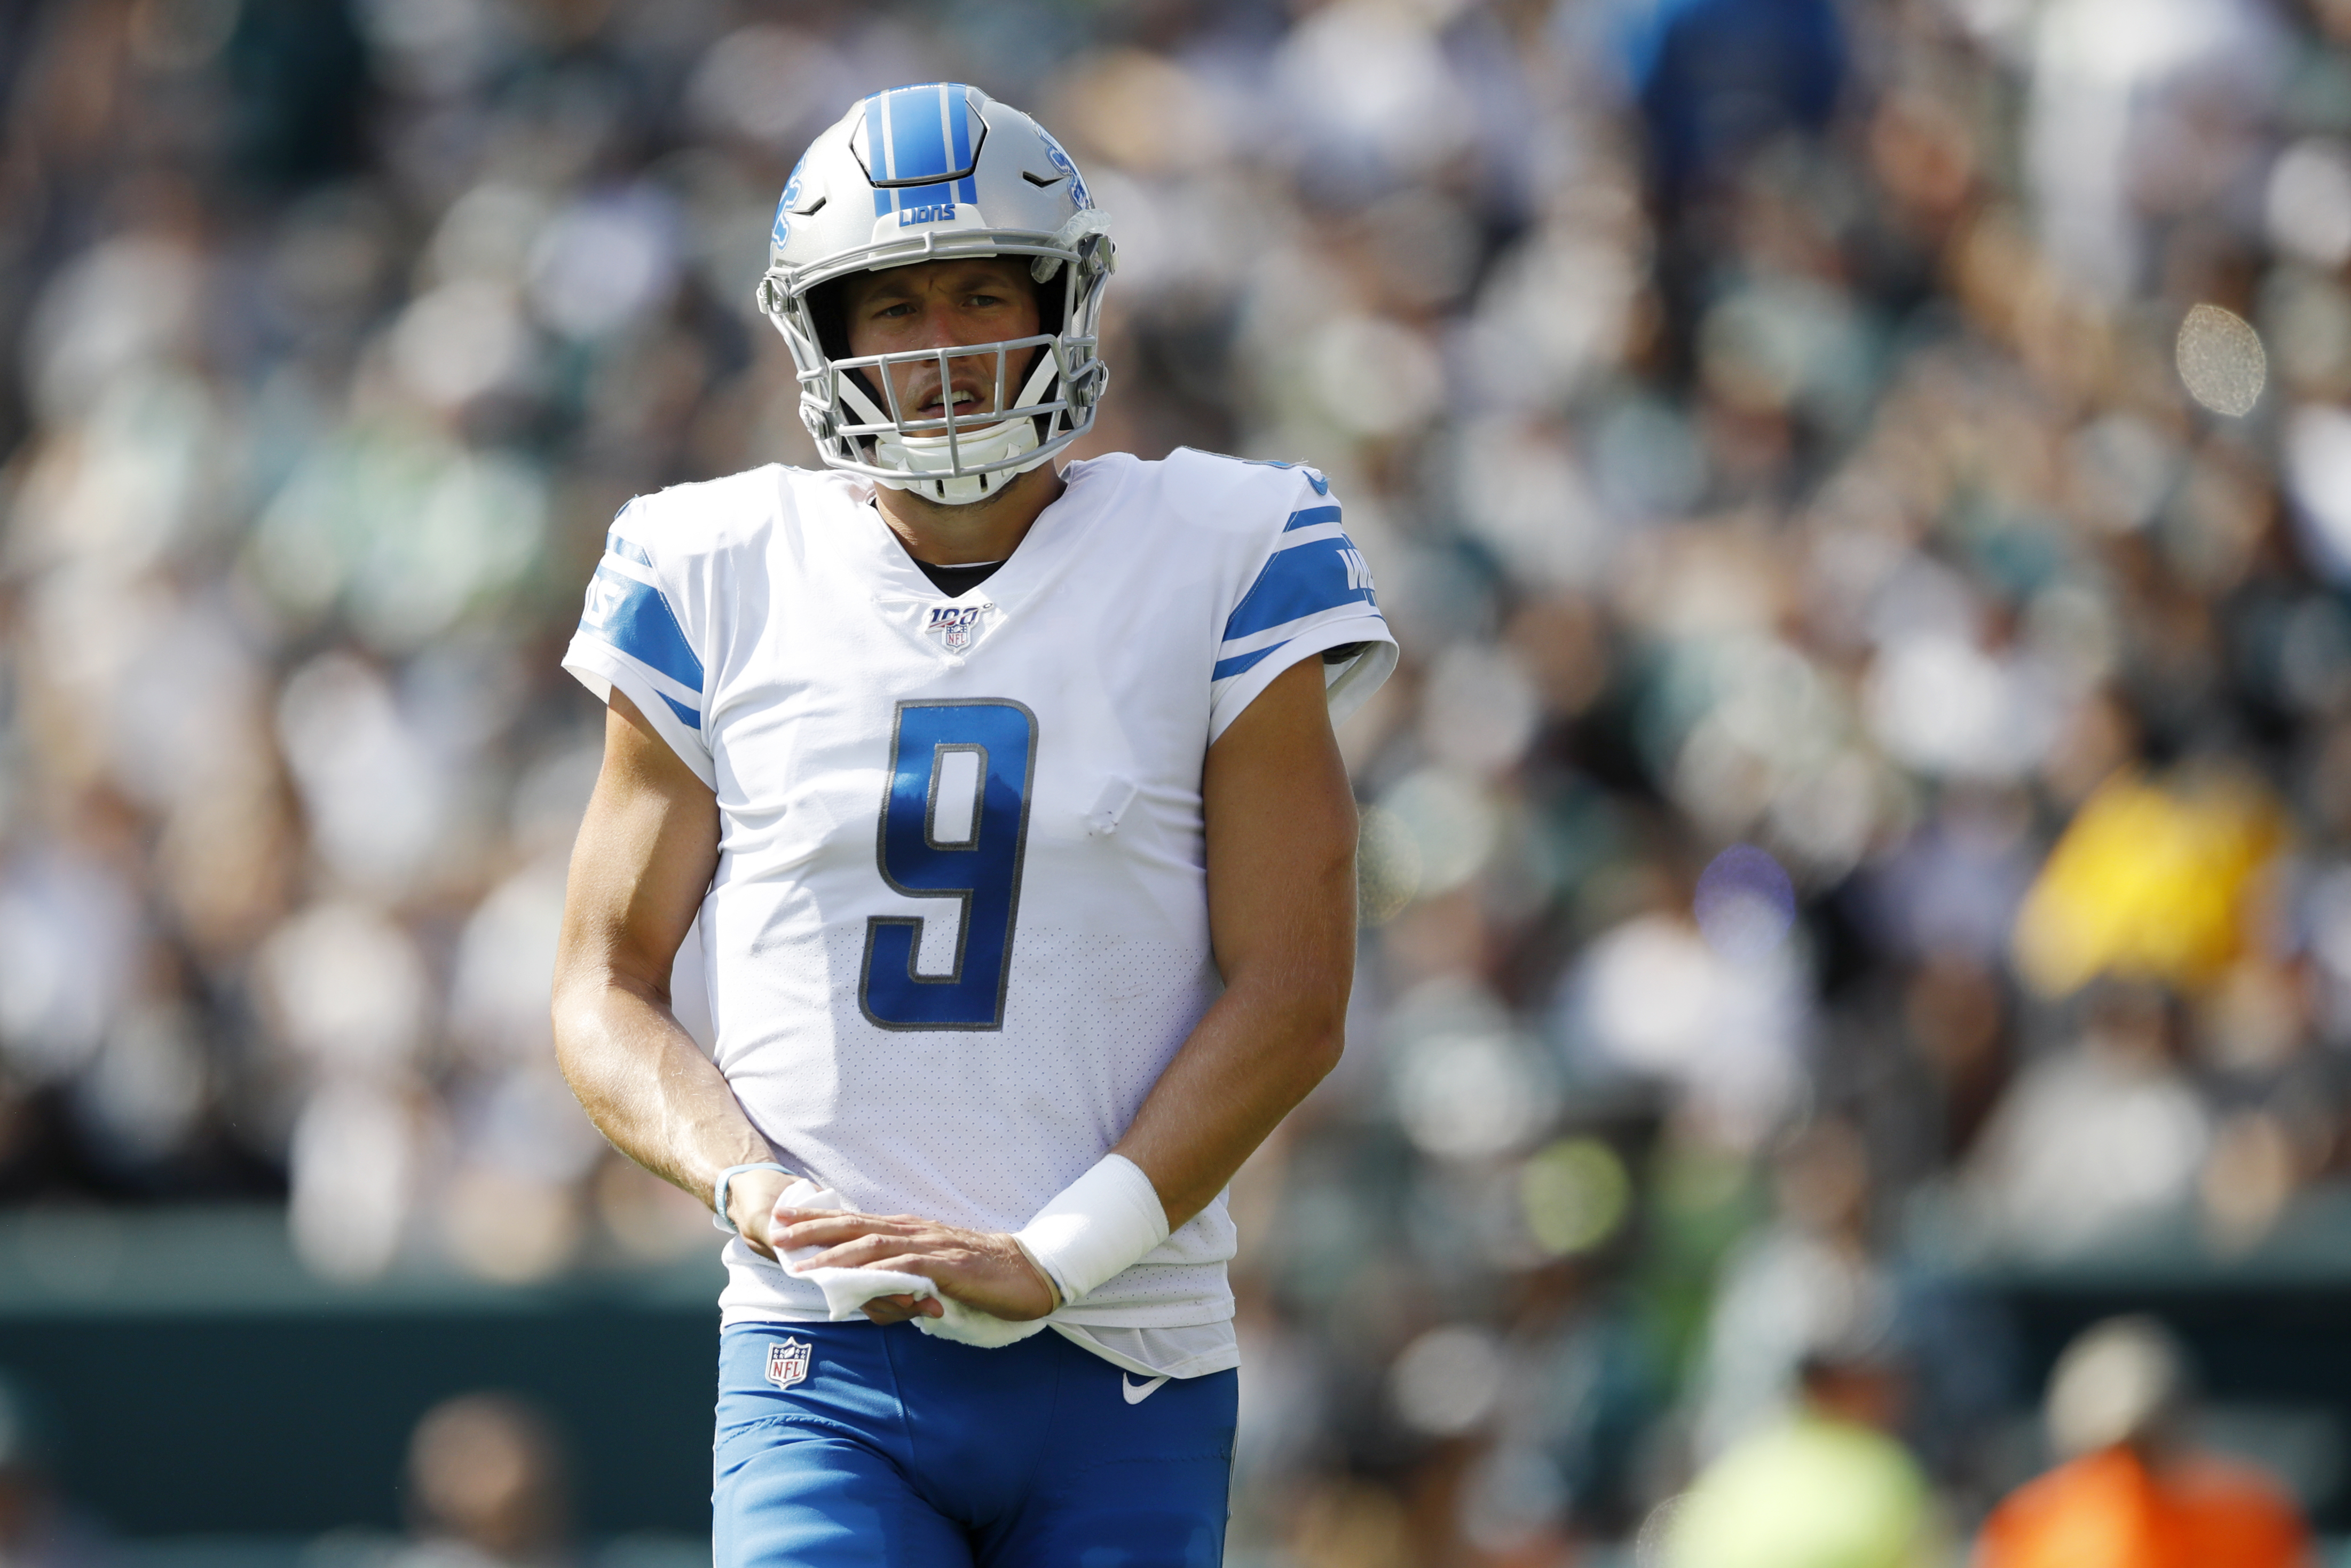 online retailer 3bade 66423 Matthew Stafford takes out 2 guys to help spring J.D. ...